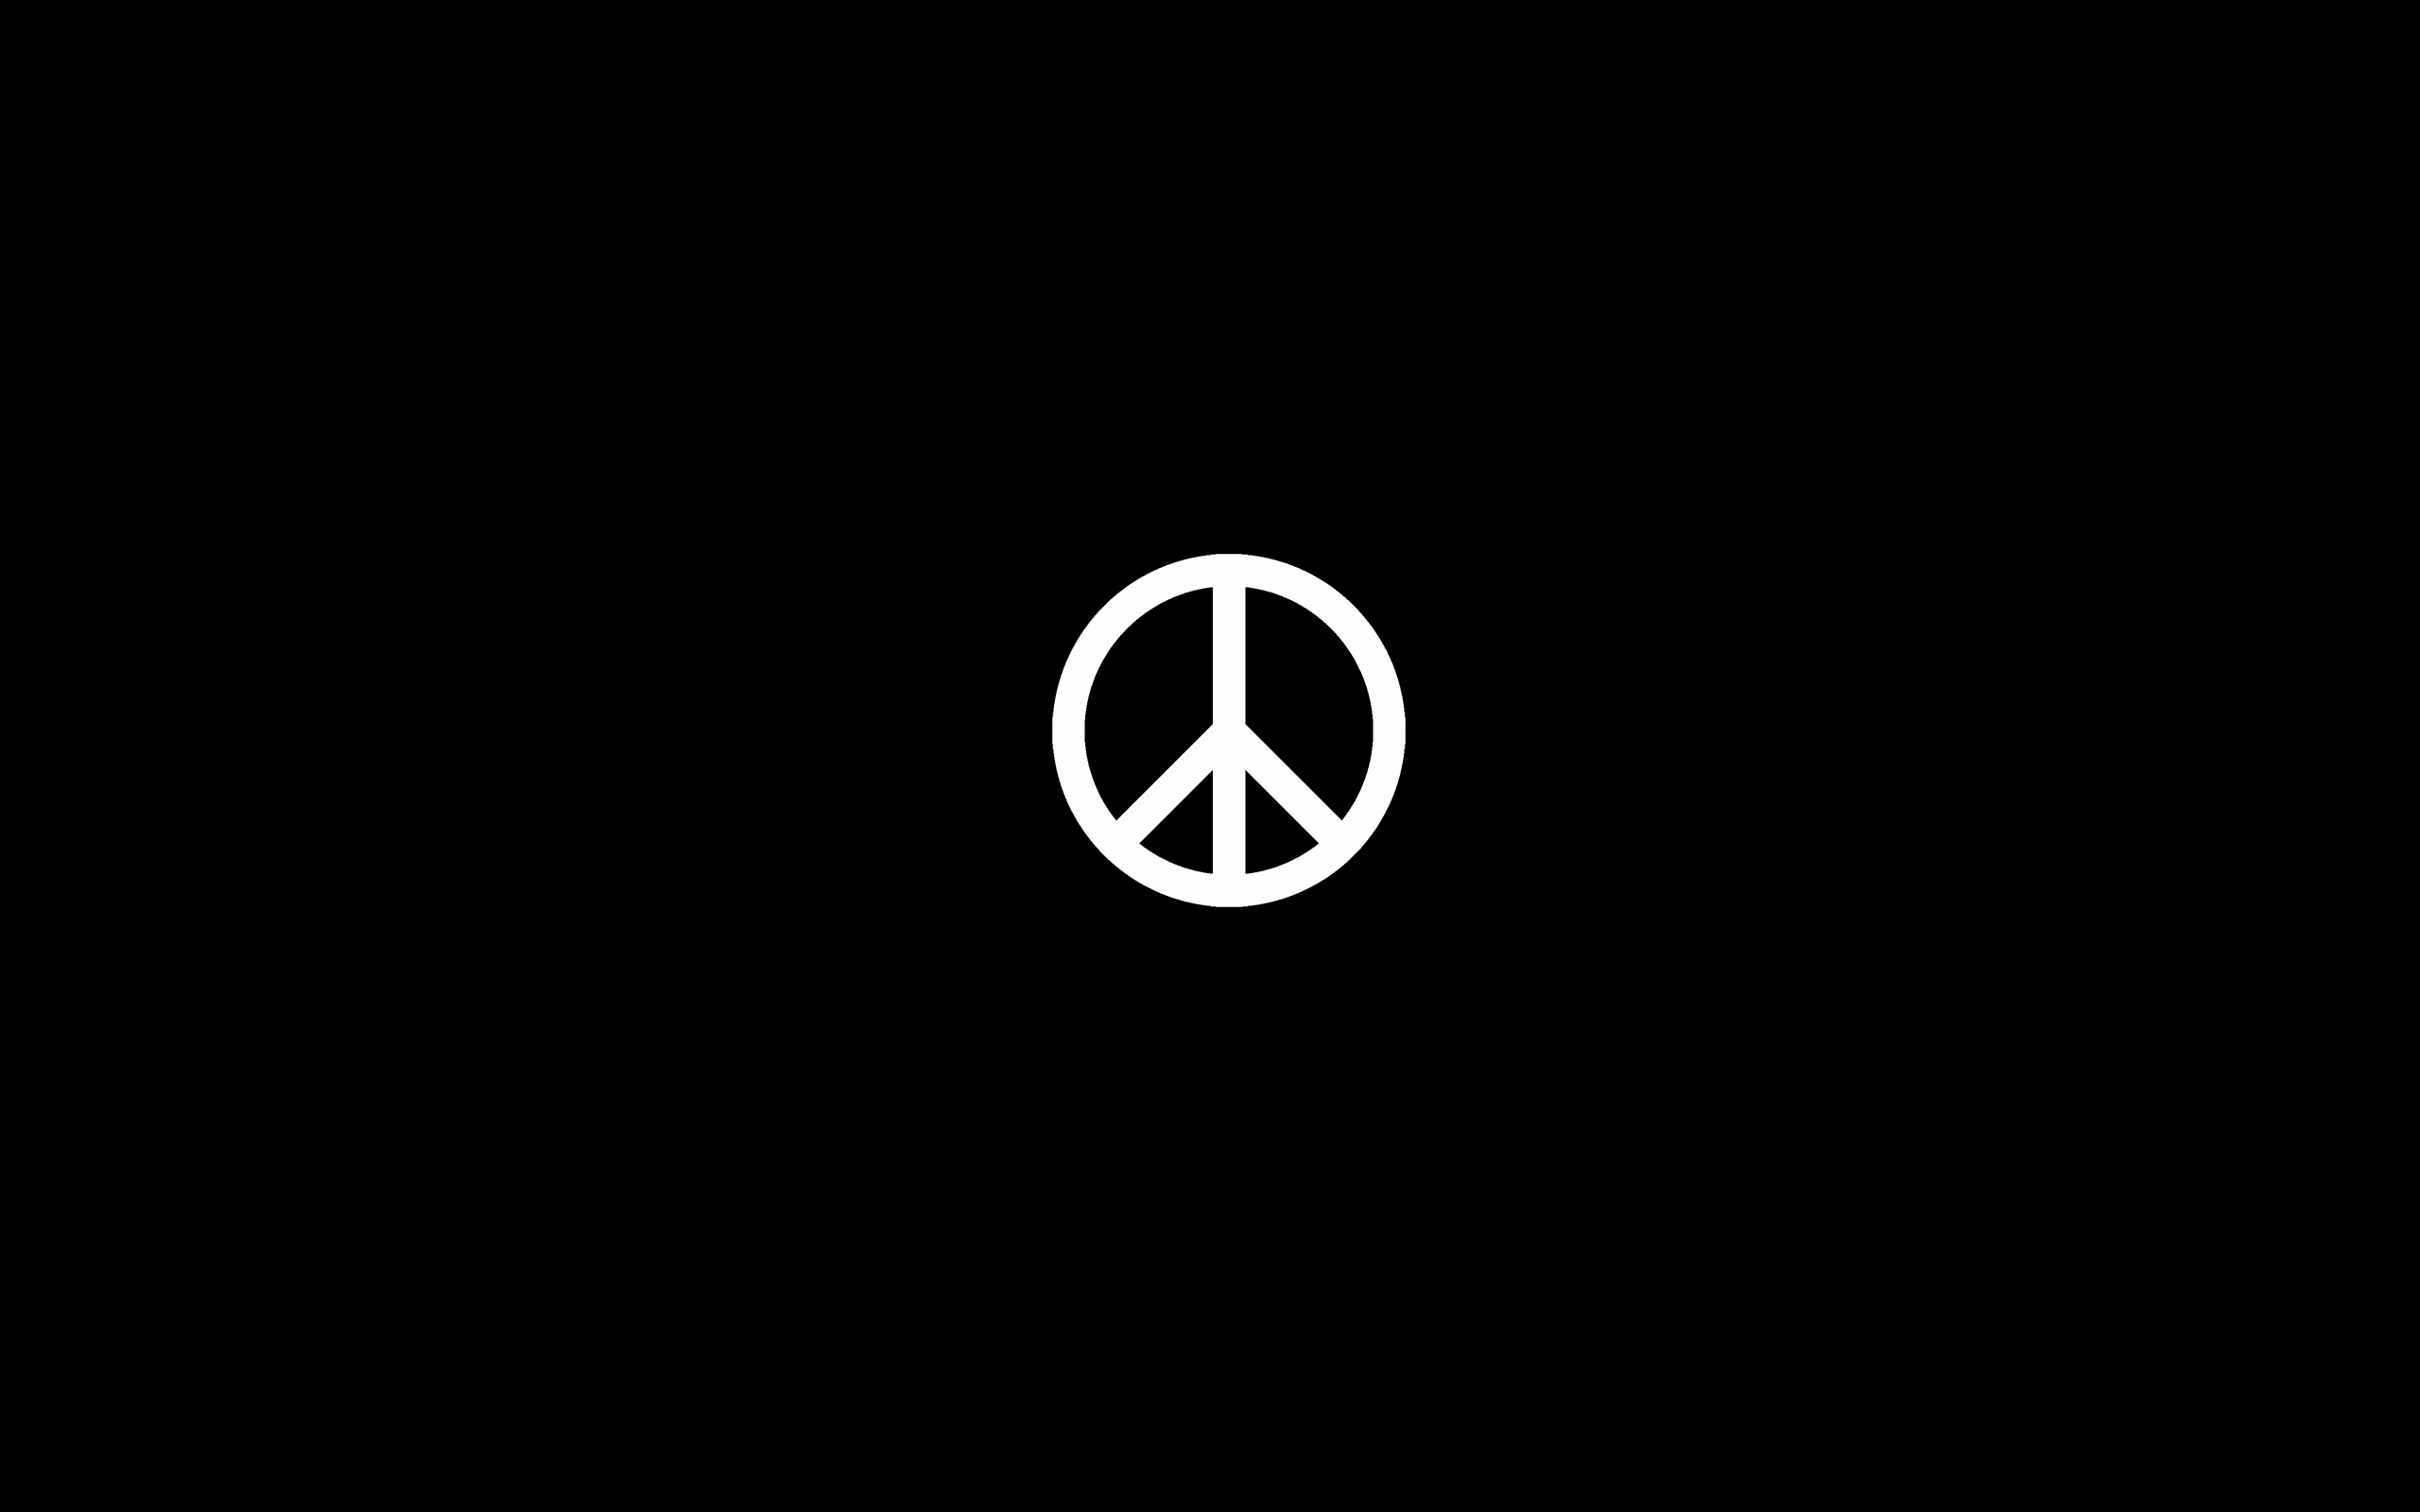 9 HD Peace Sign Wallpapers   HDWallSourcecom 2560x1600